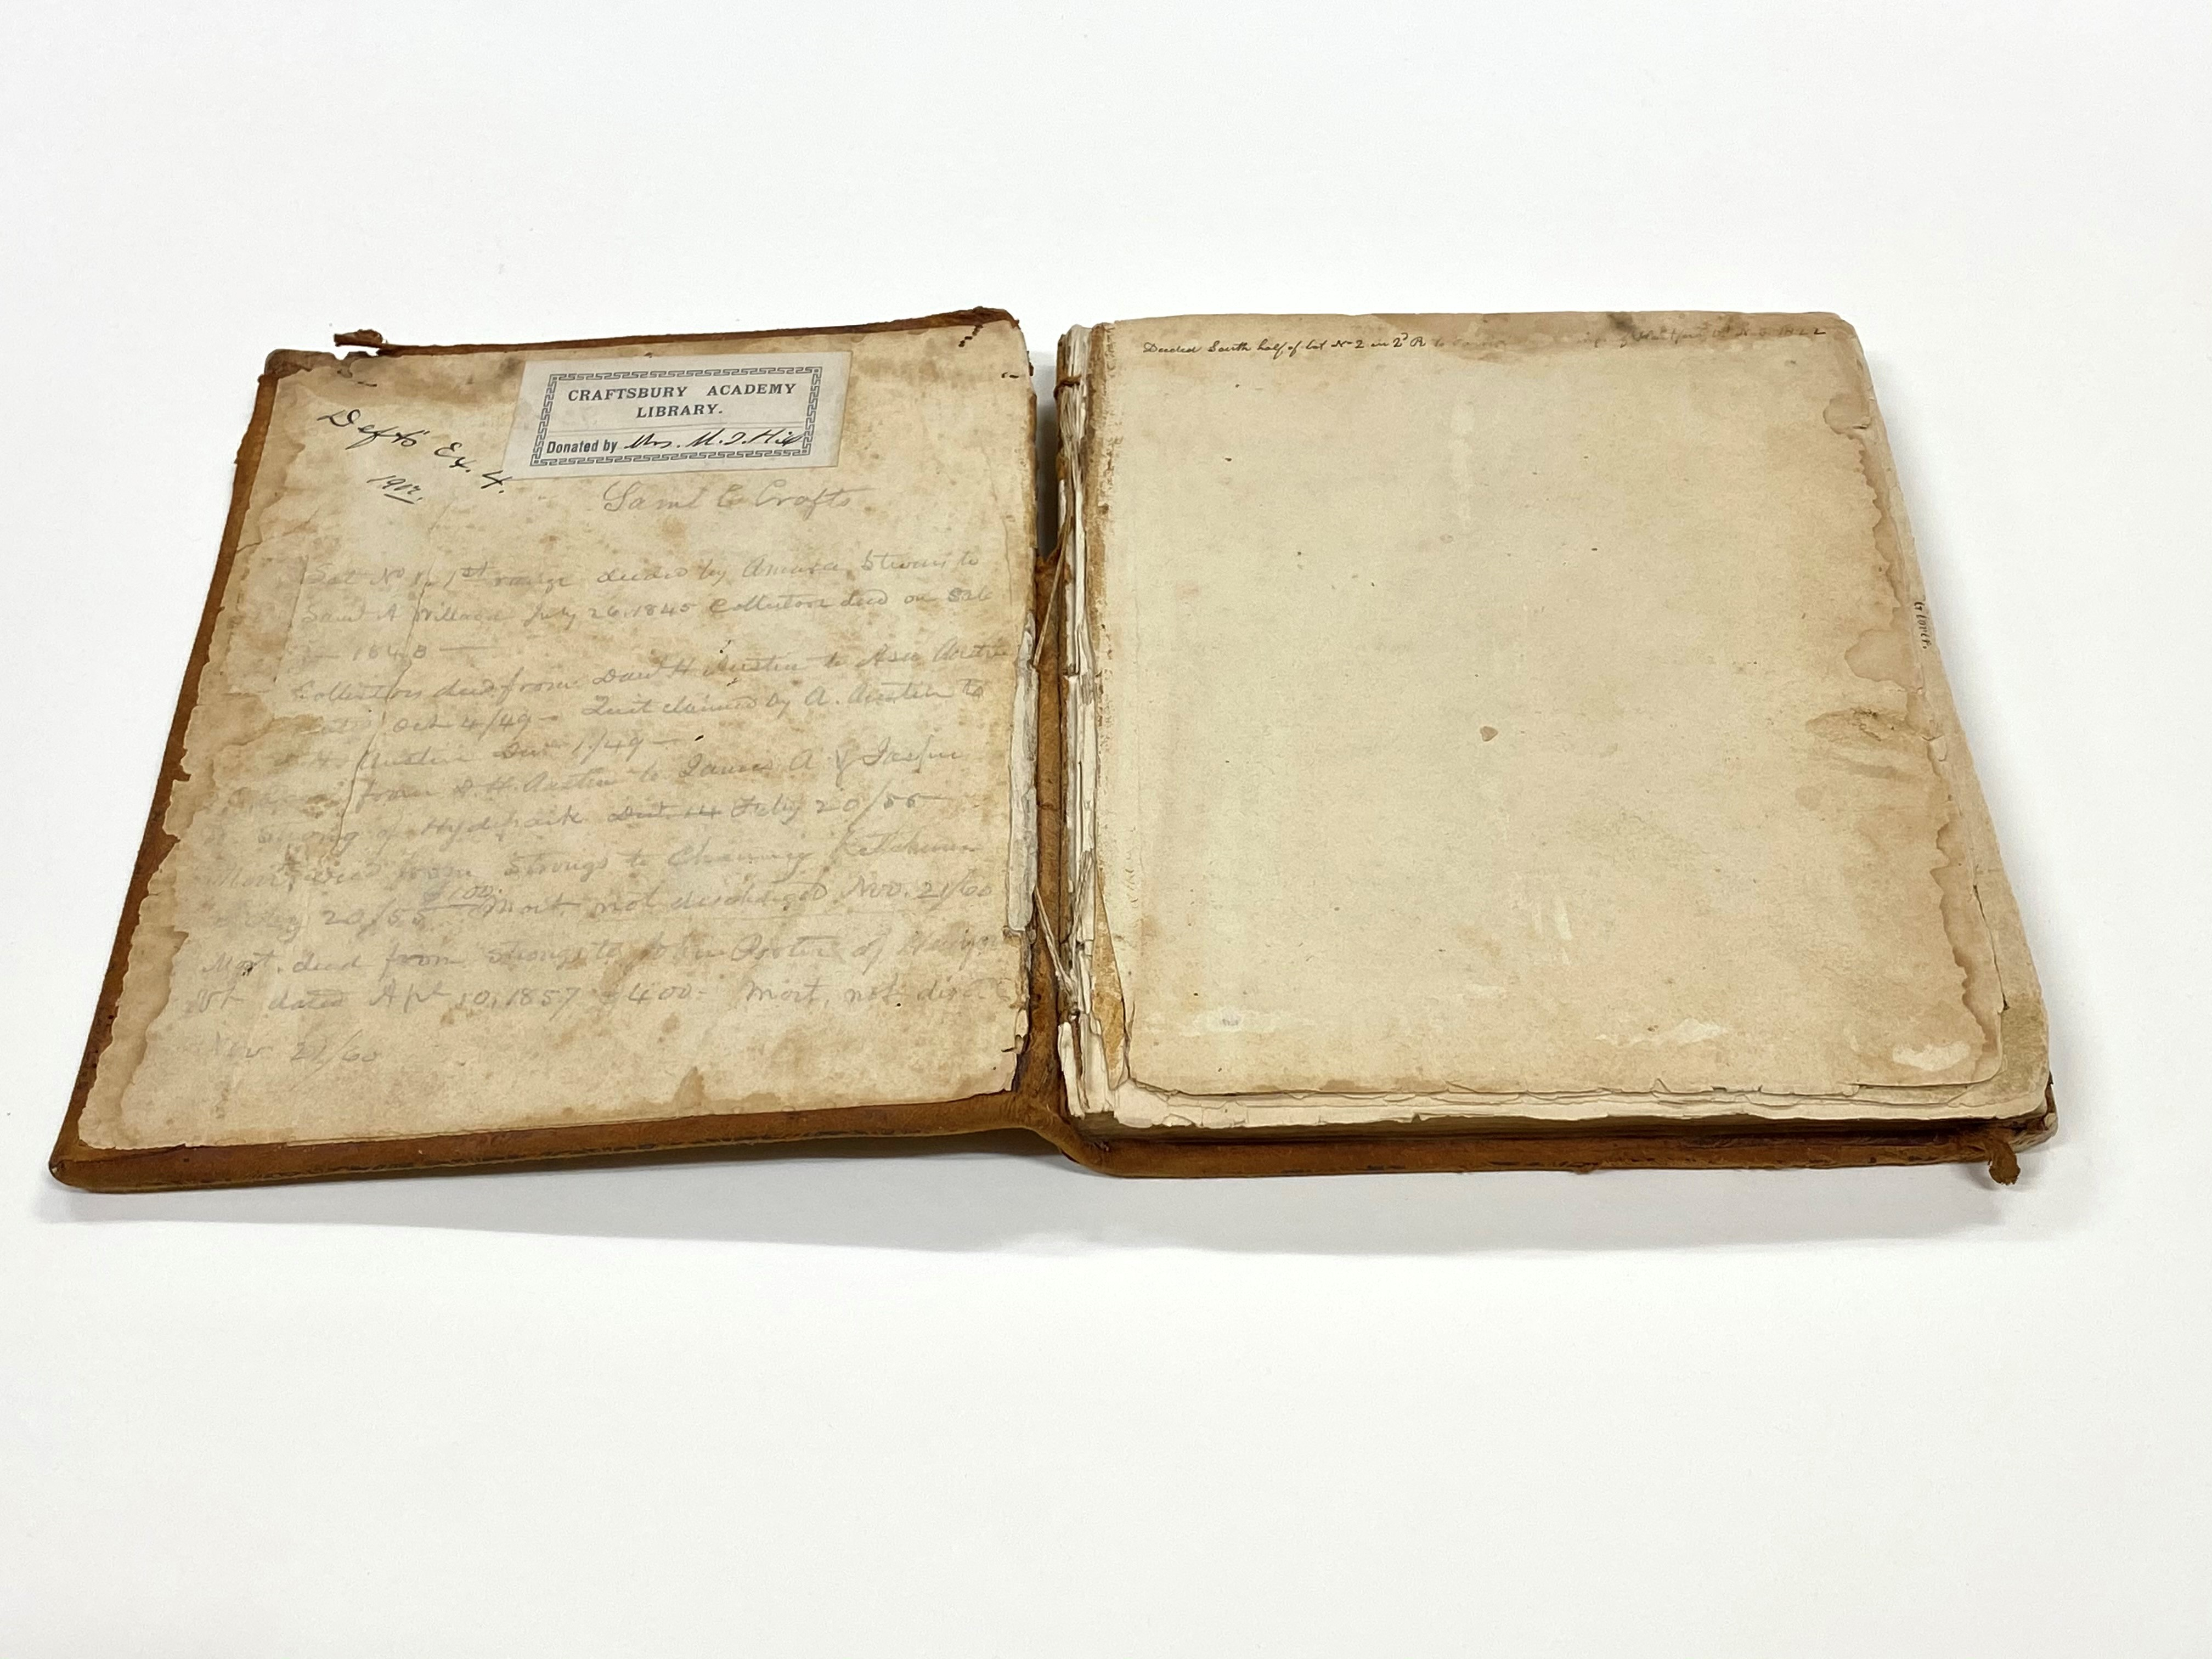 Samuel Crafts' Book of Plans of Vermont Towns